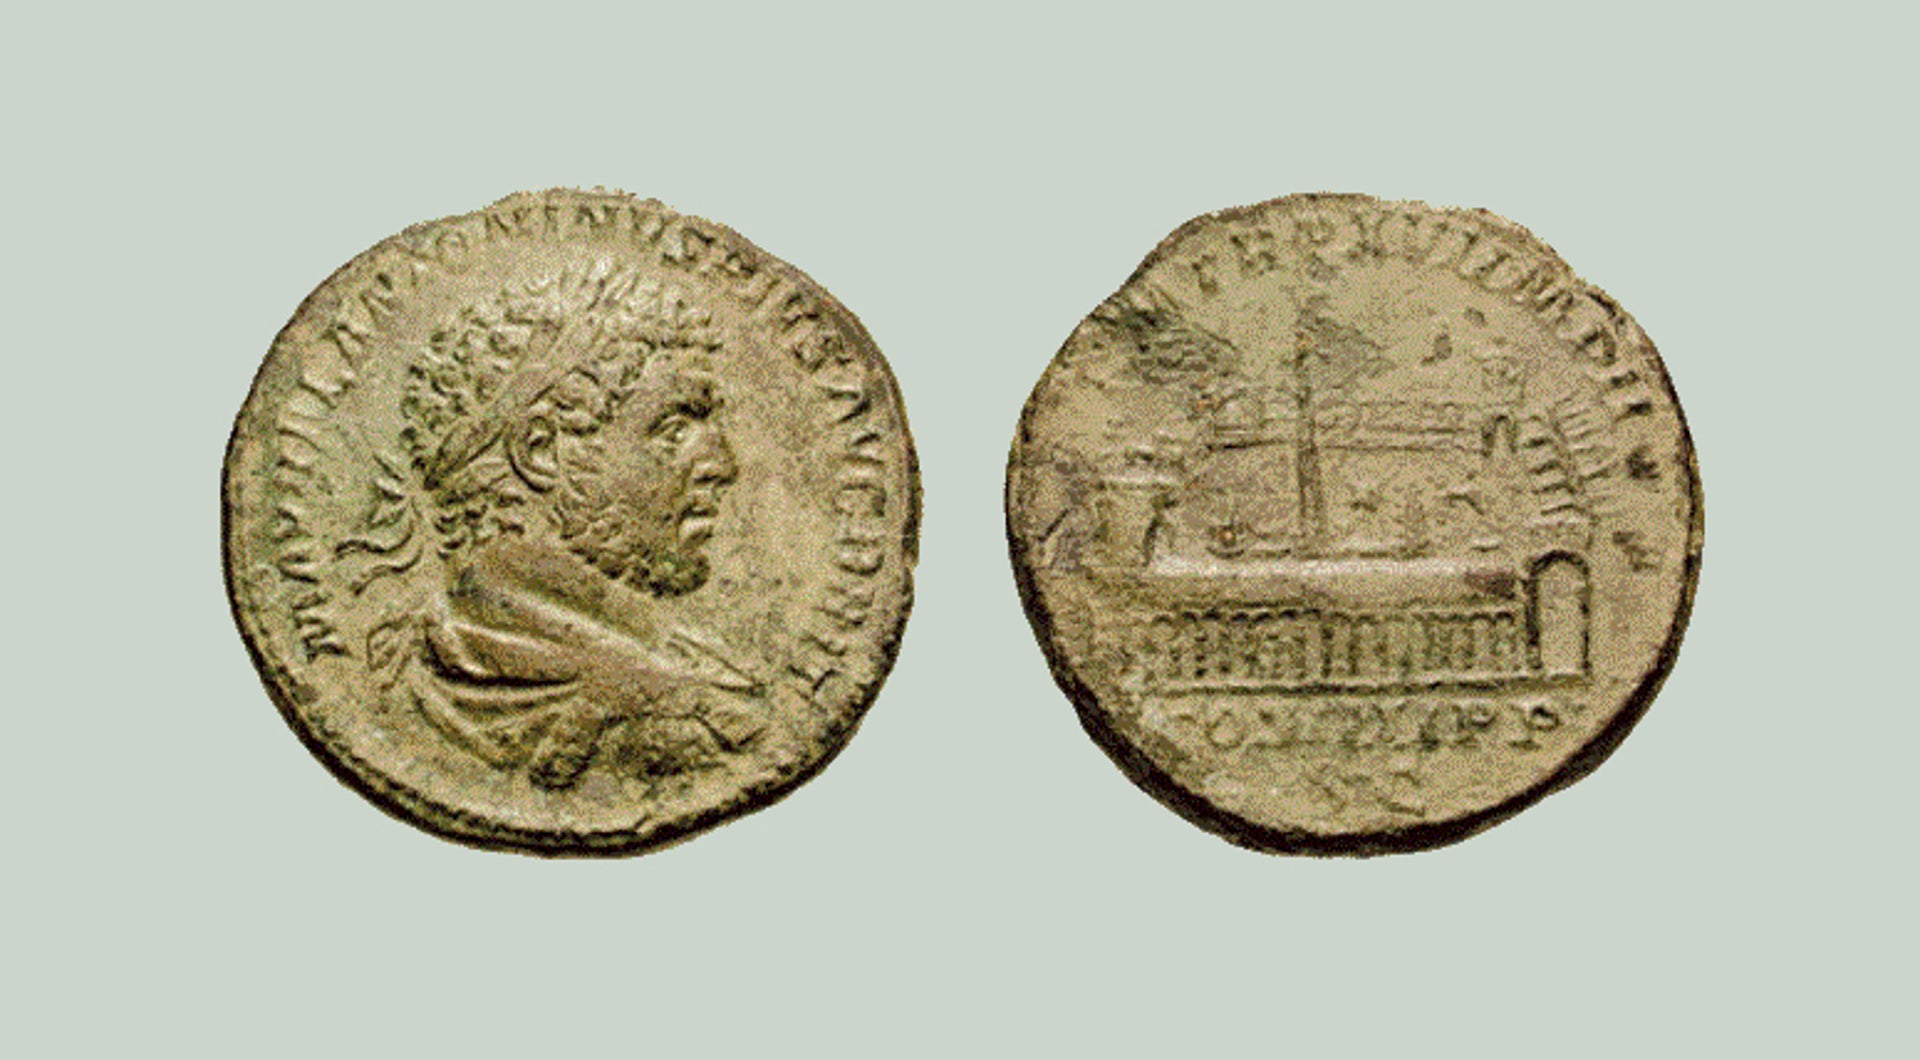 A sestertius depicting the Roman emperor Marcus Aurelius Severus Antoninus Augustus (better known as Caracalla) on one side, and the Circus Maximus on the other side, with Augustus' obelisk midway along the central dividing barrier.